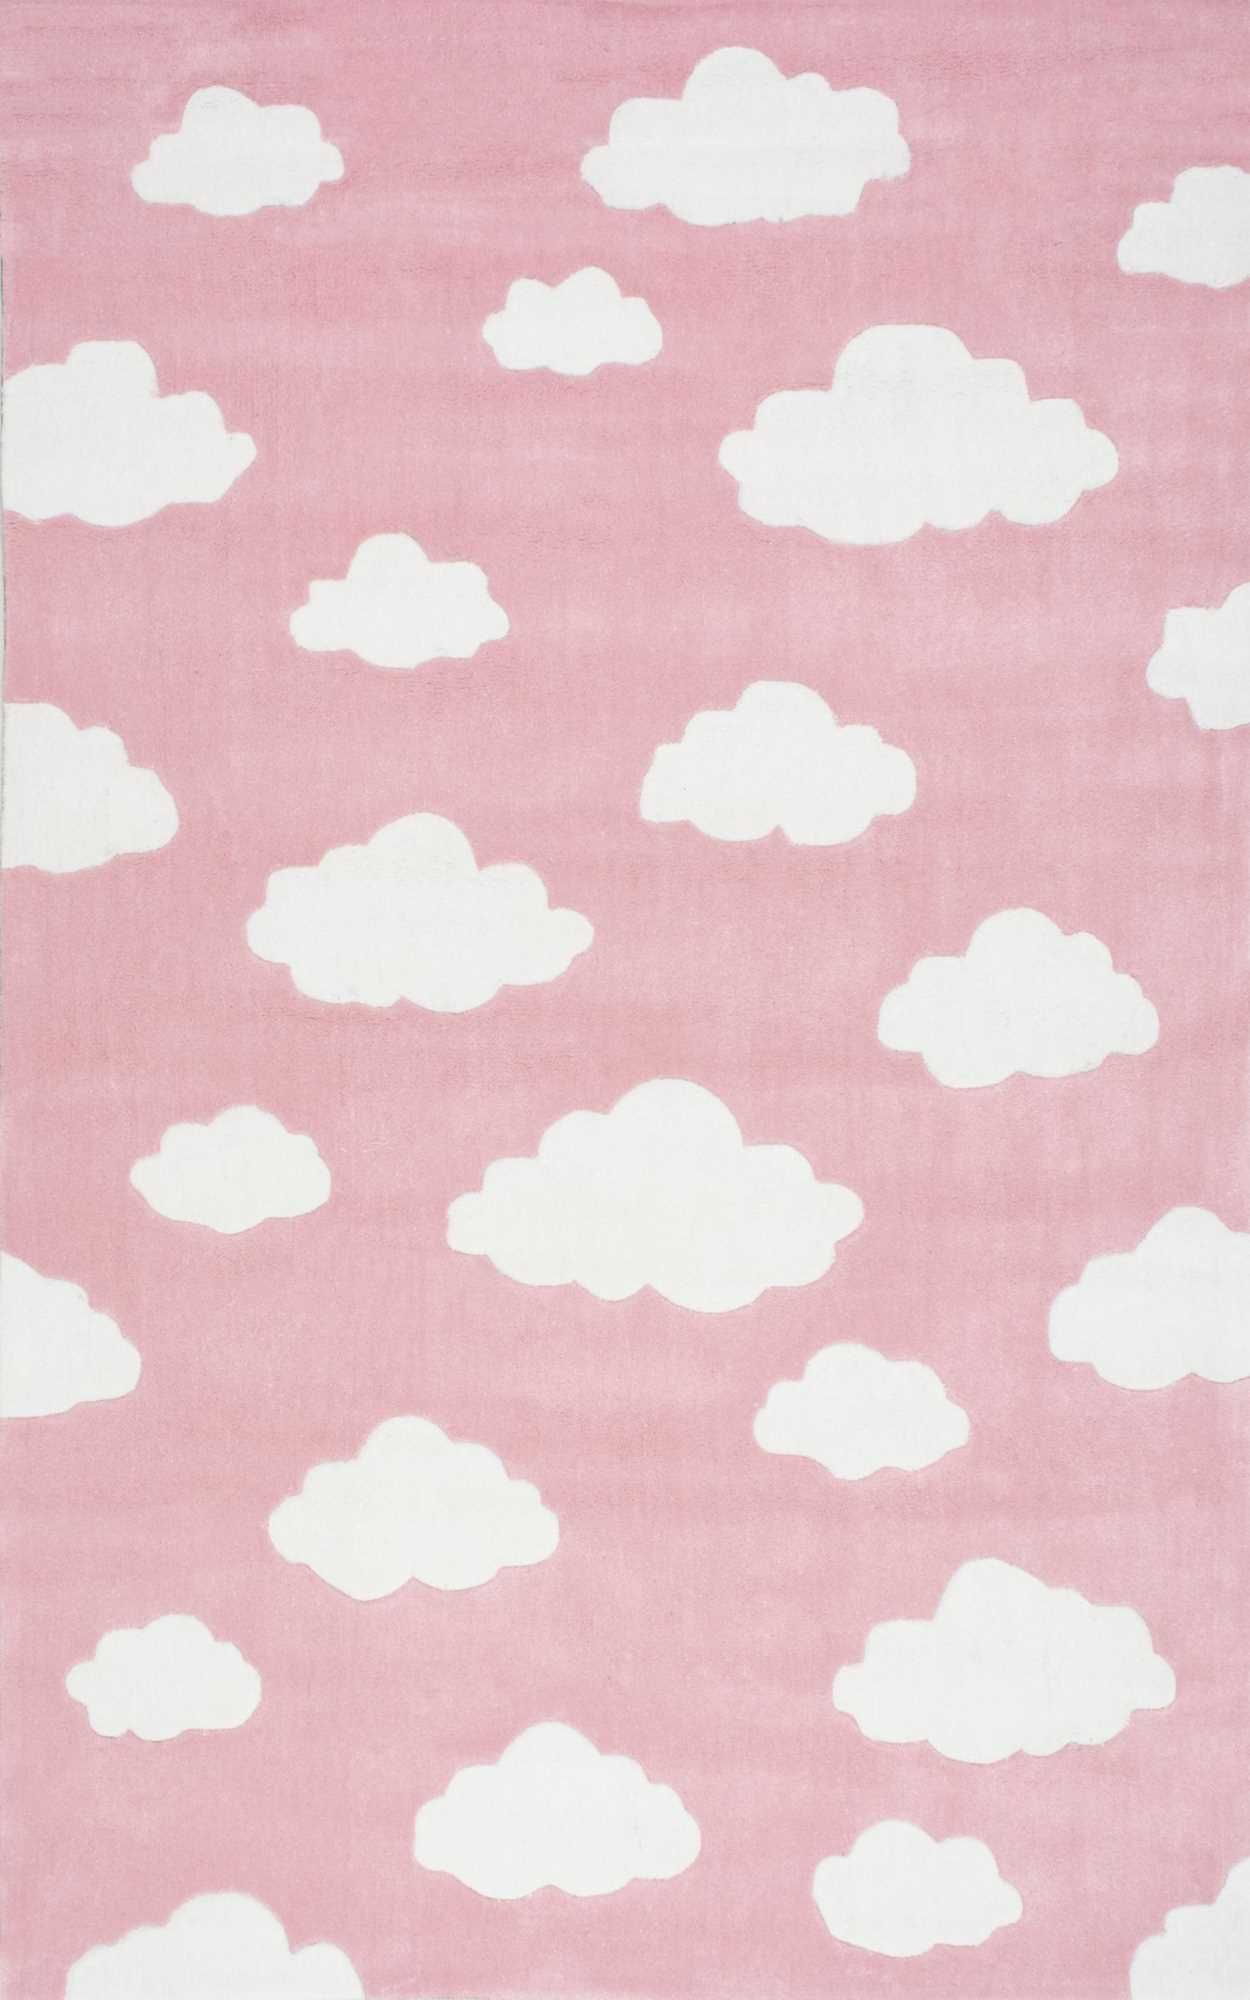 Serendipity Cloud Pink Rug Cloud Rug Pink And Blue Rug Iphone Wallpaper